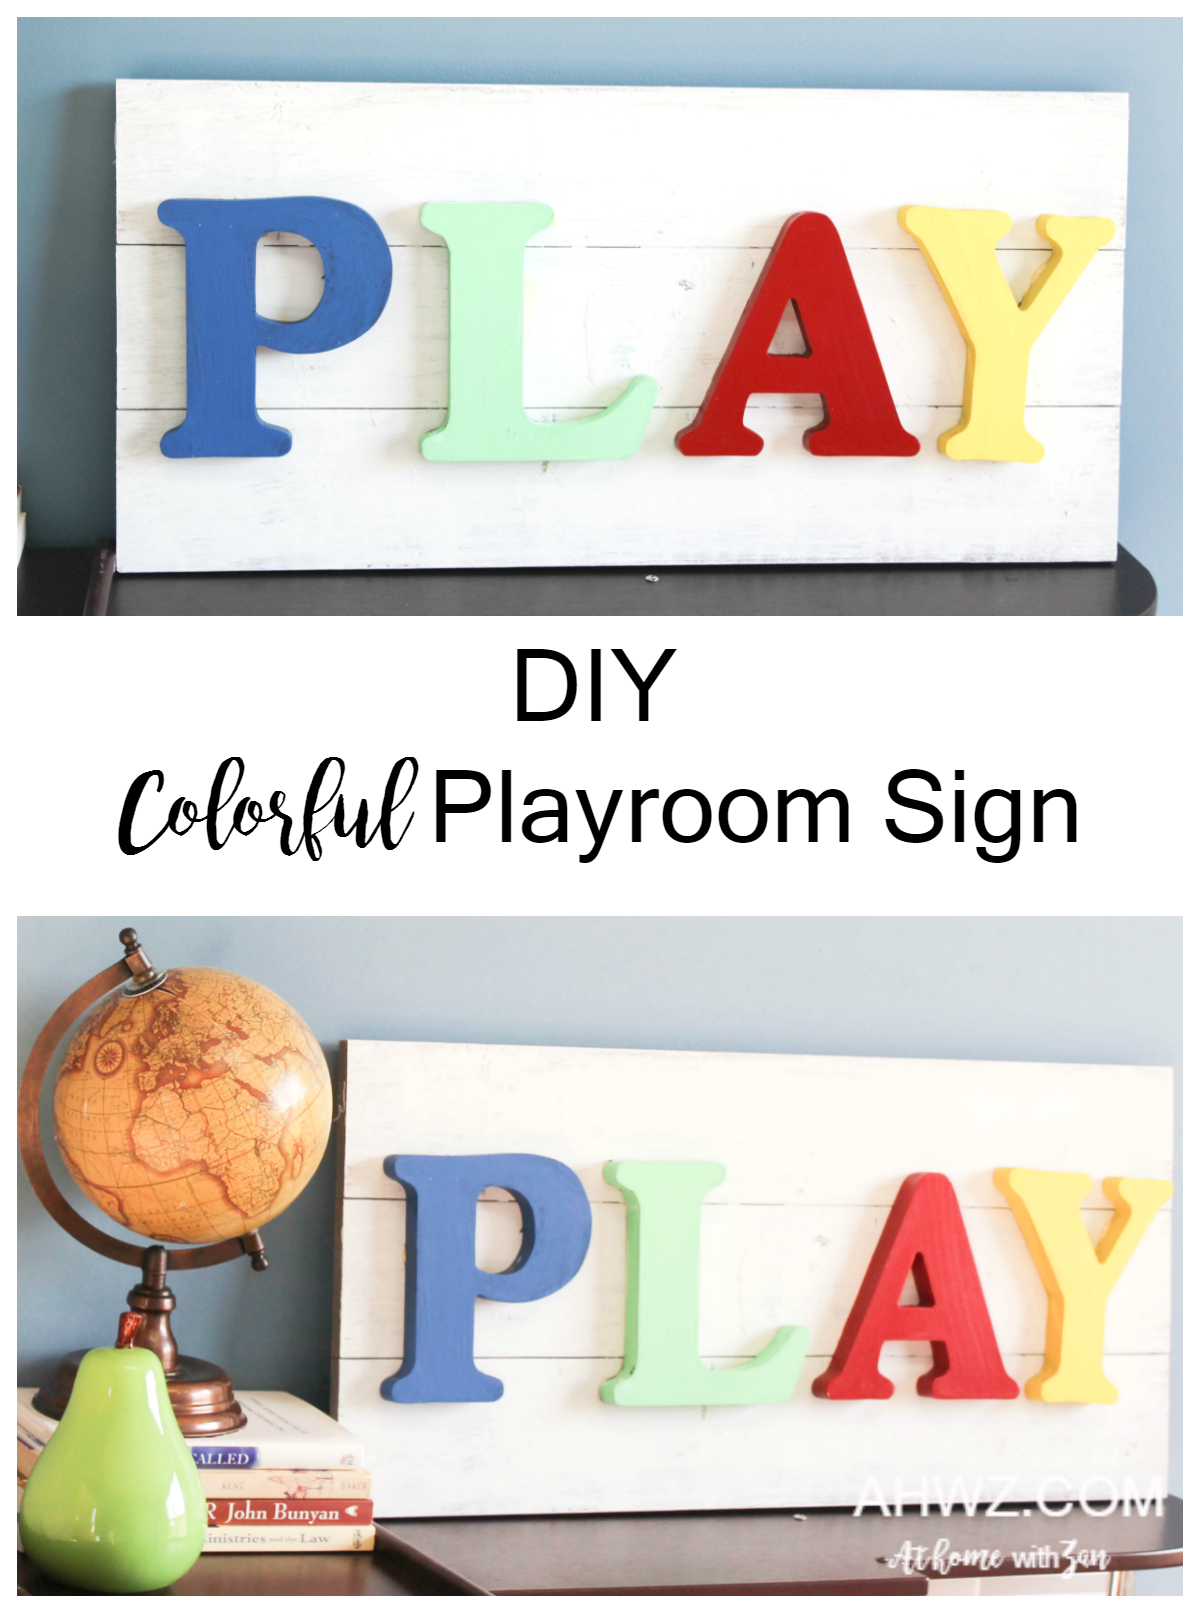 Diy Colorful Playroom Sign  At Home With Zan. Dysmorphic Feature Signs. Status Signs. Incomplete Signs. Wooden Plank Signs Of Stroke. Based Signs. Stress Relief Signs. Respiratory Failure Signs. February 4th Signs Of Stroke